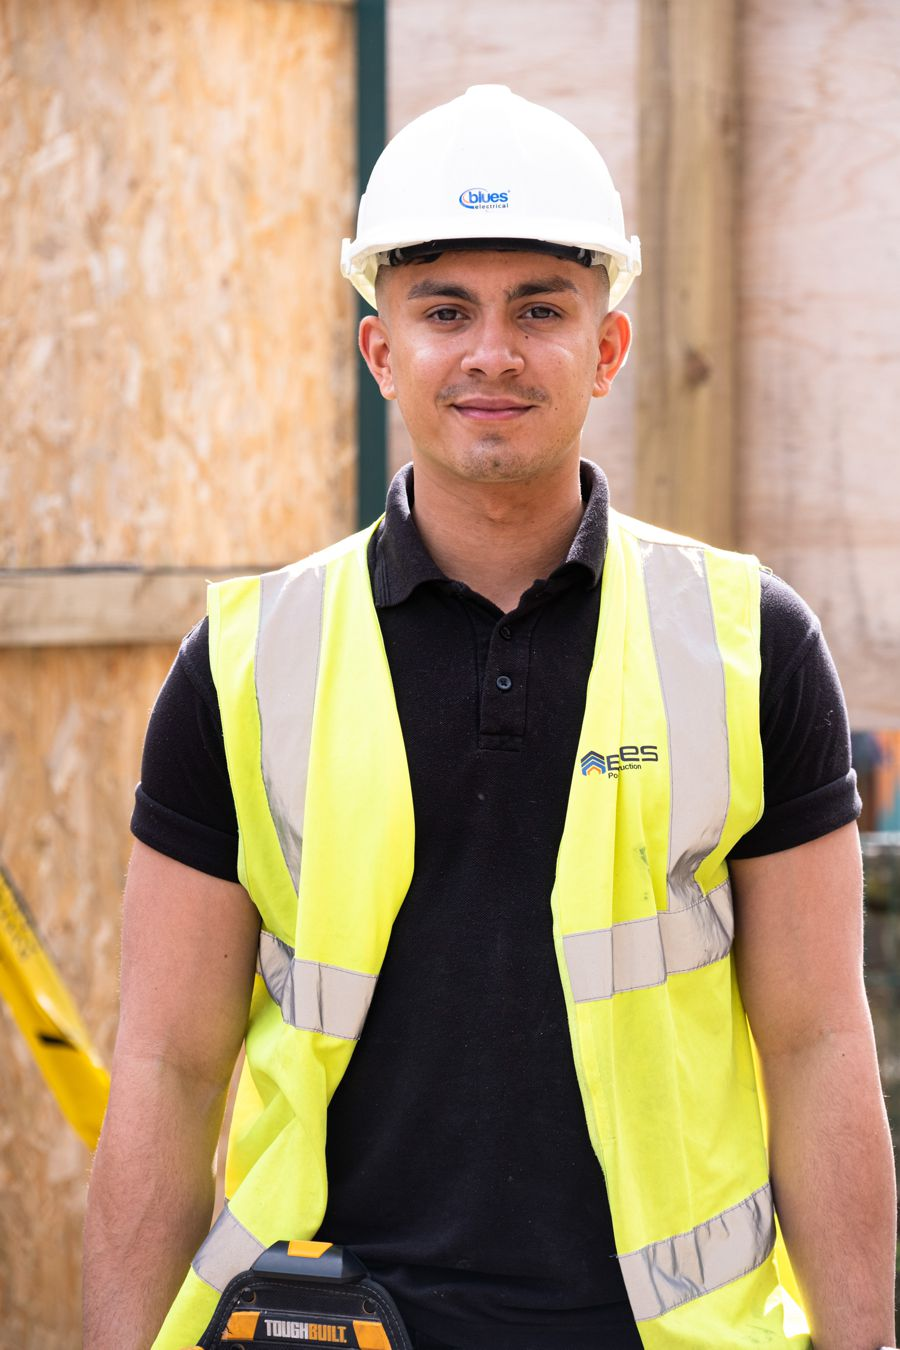 Screwfix Apprentice of the Year candidate Kaiden Ashun Picture by Nick Treharne